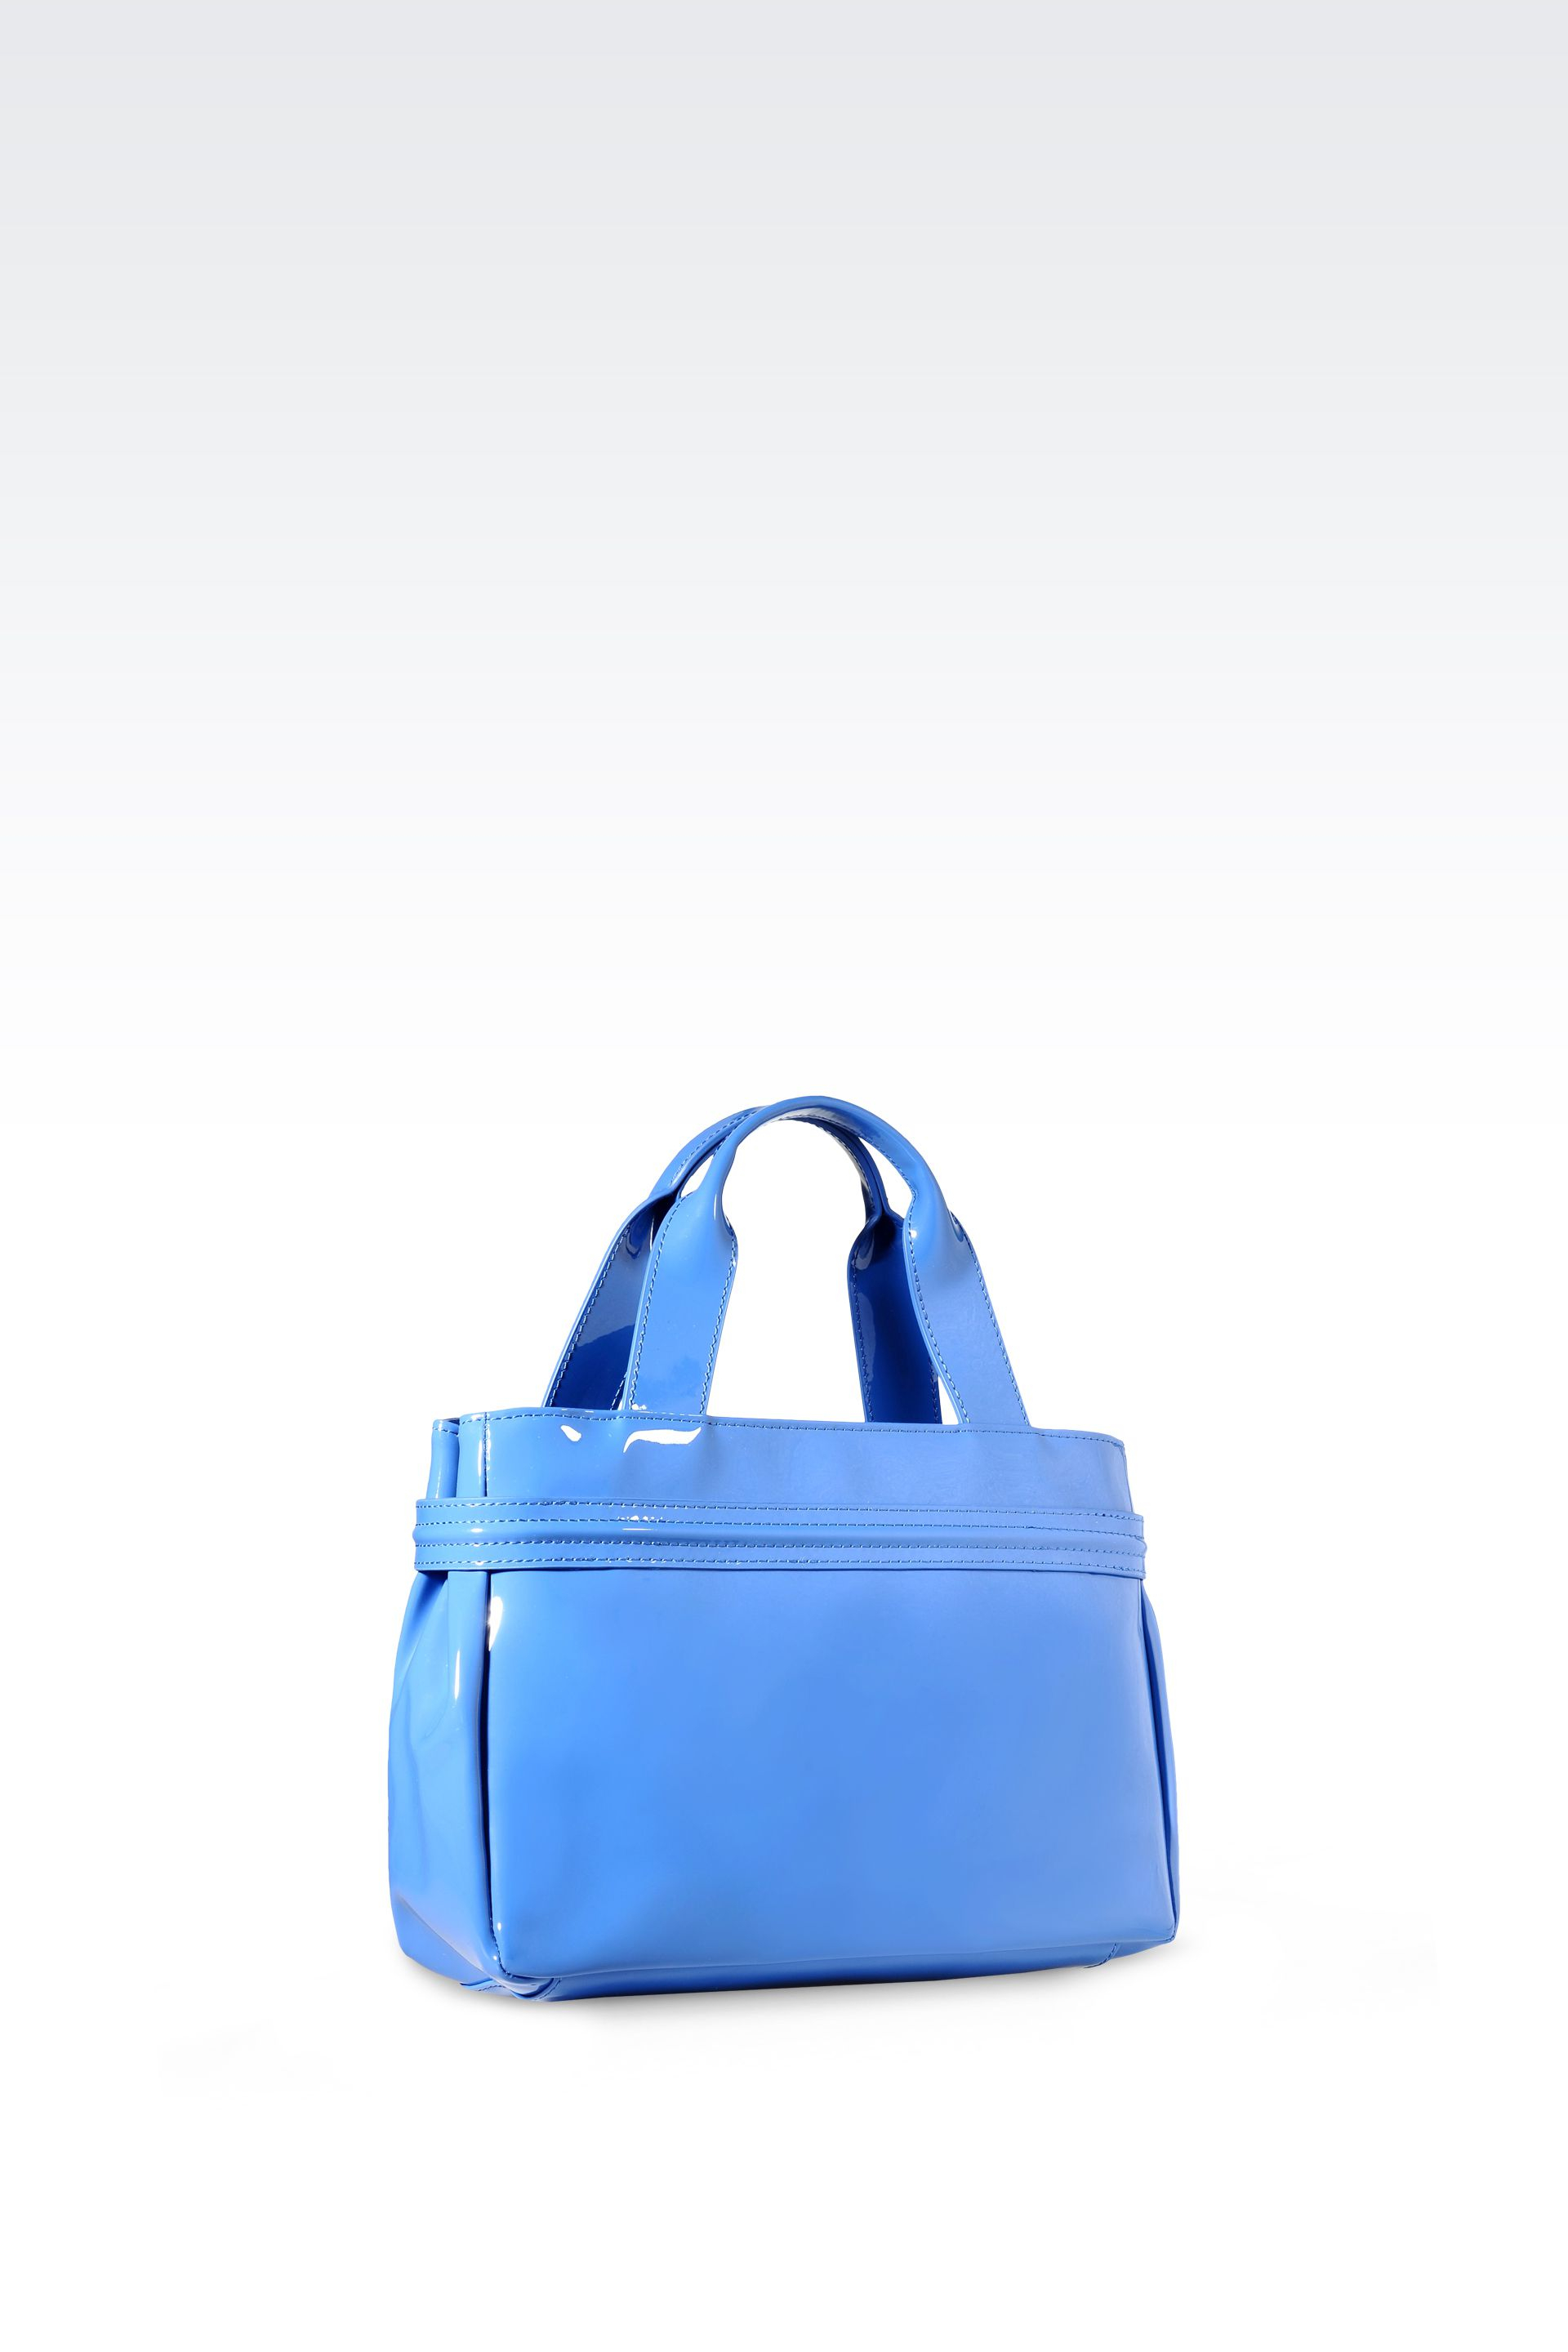 Lyst - Armani Jeans Mini Shopping Bag In Patent Faux Leather With ... 0b3da7fe62c5d